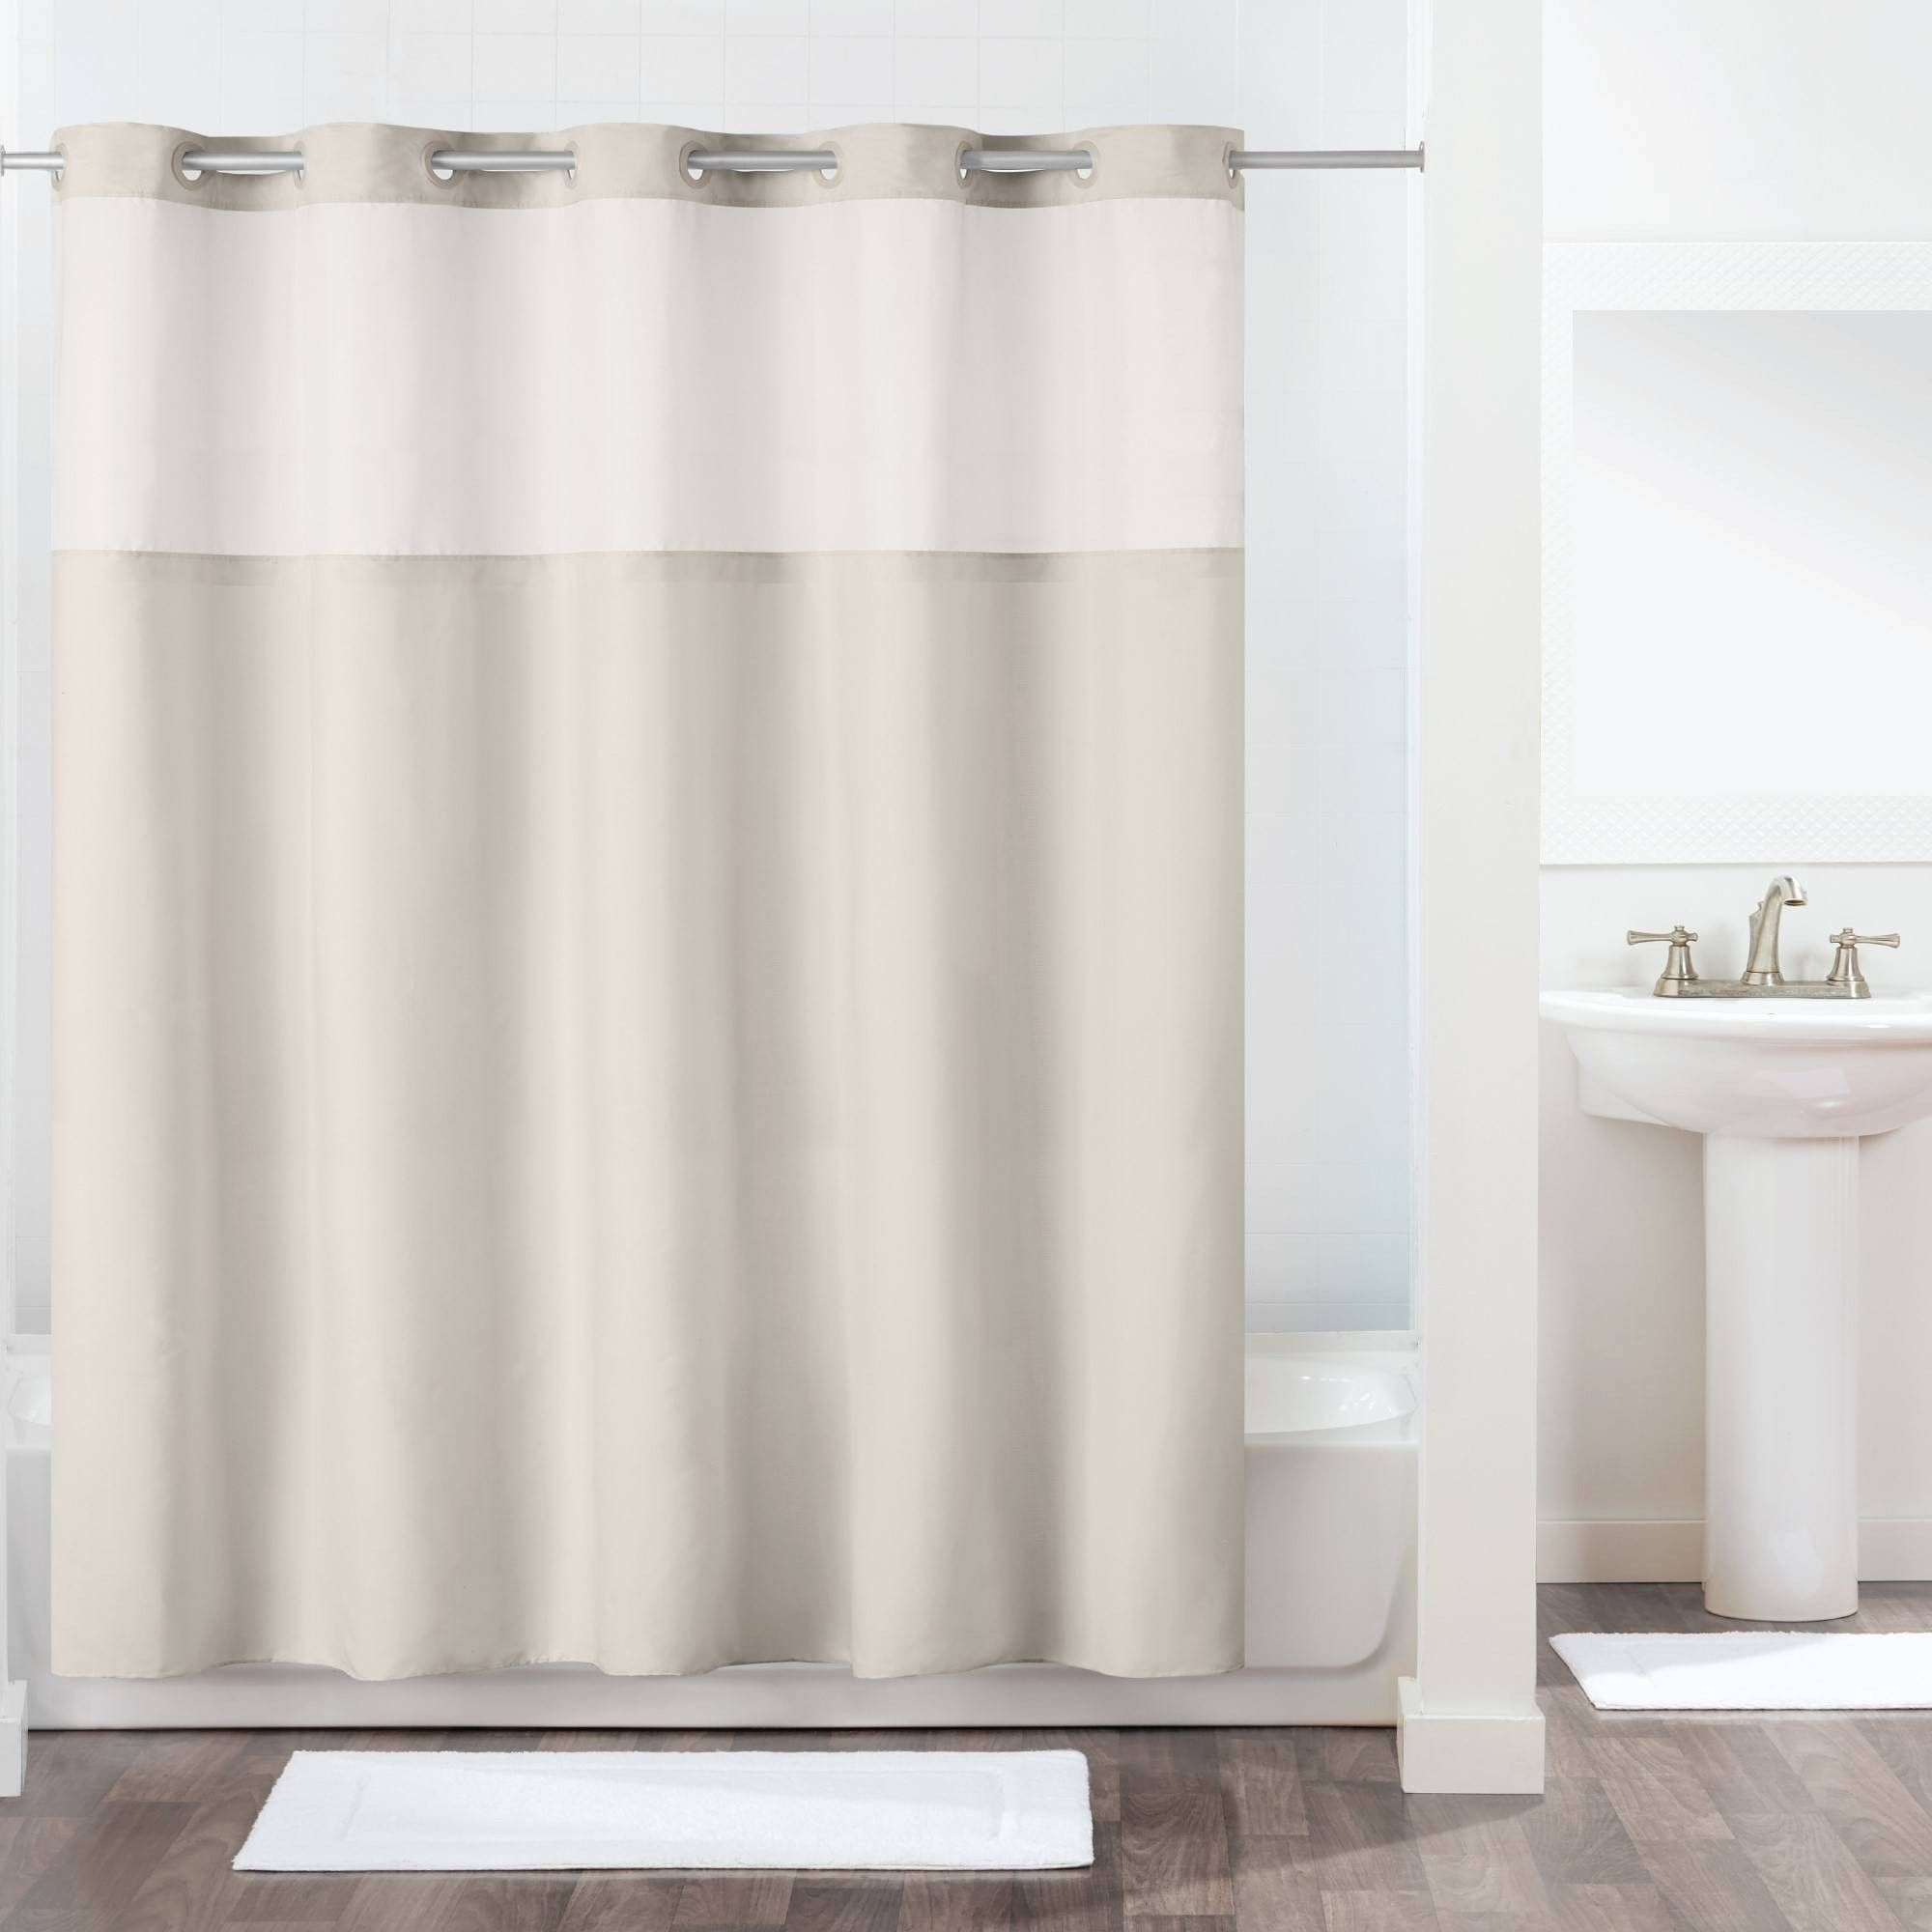 Antigo Shower Curtain With Fabric Liner Gray Hookless Hookless